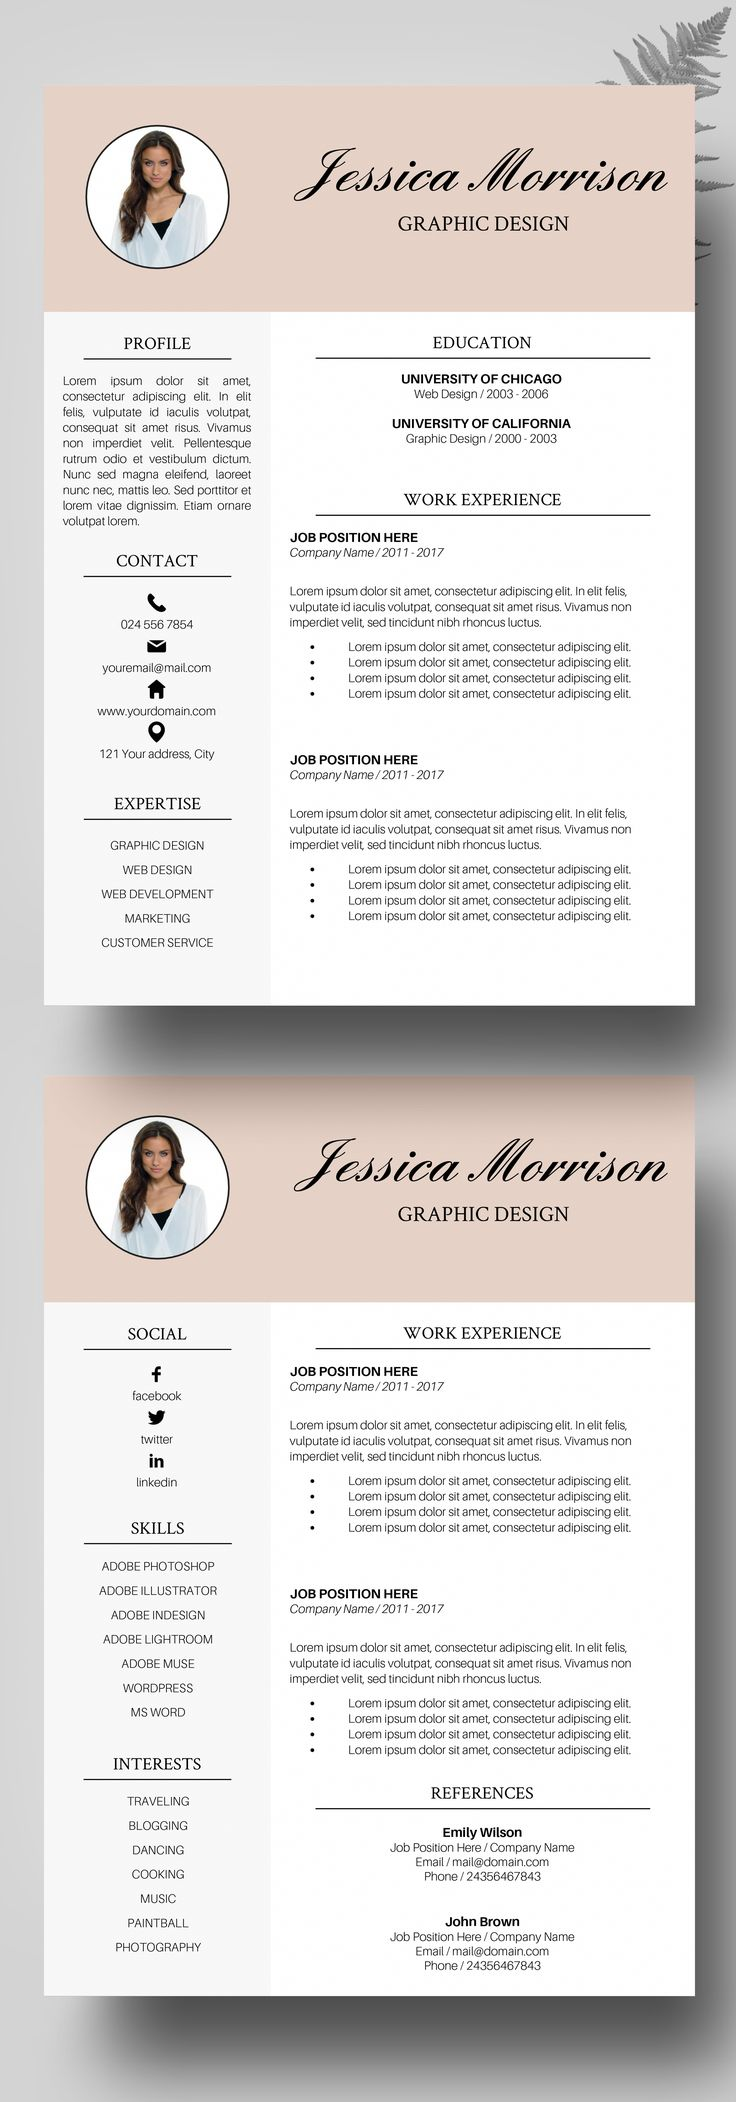 413 best CV images on Pinterest | Resume, Resume design and Curriculum